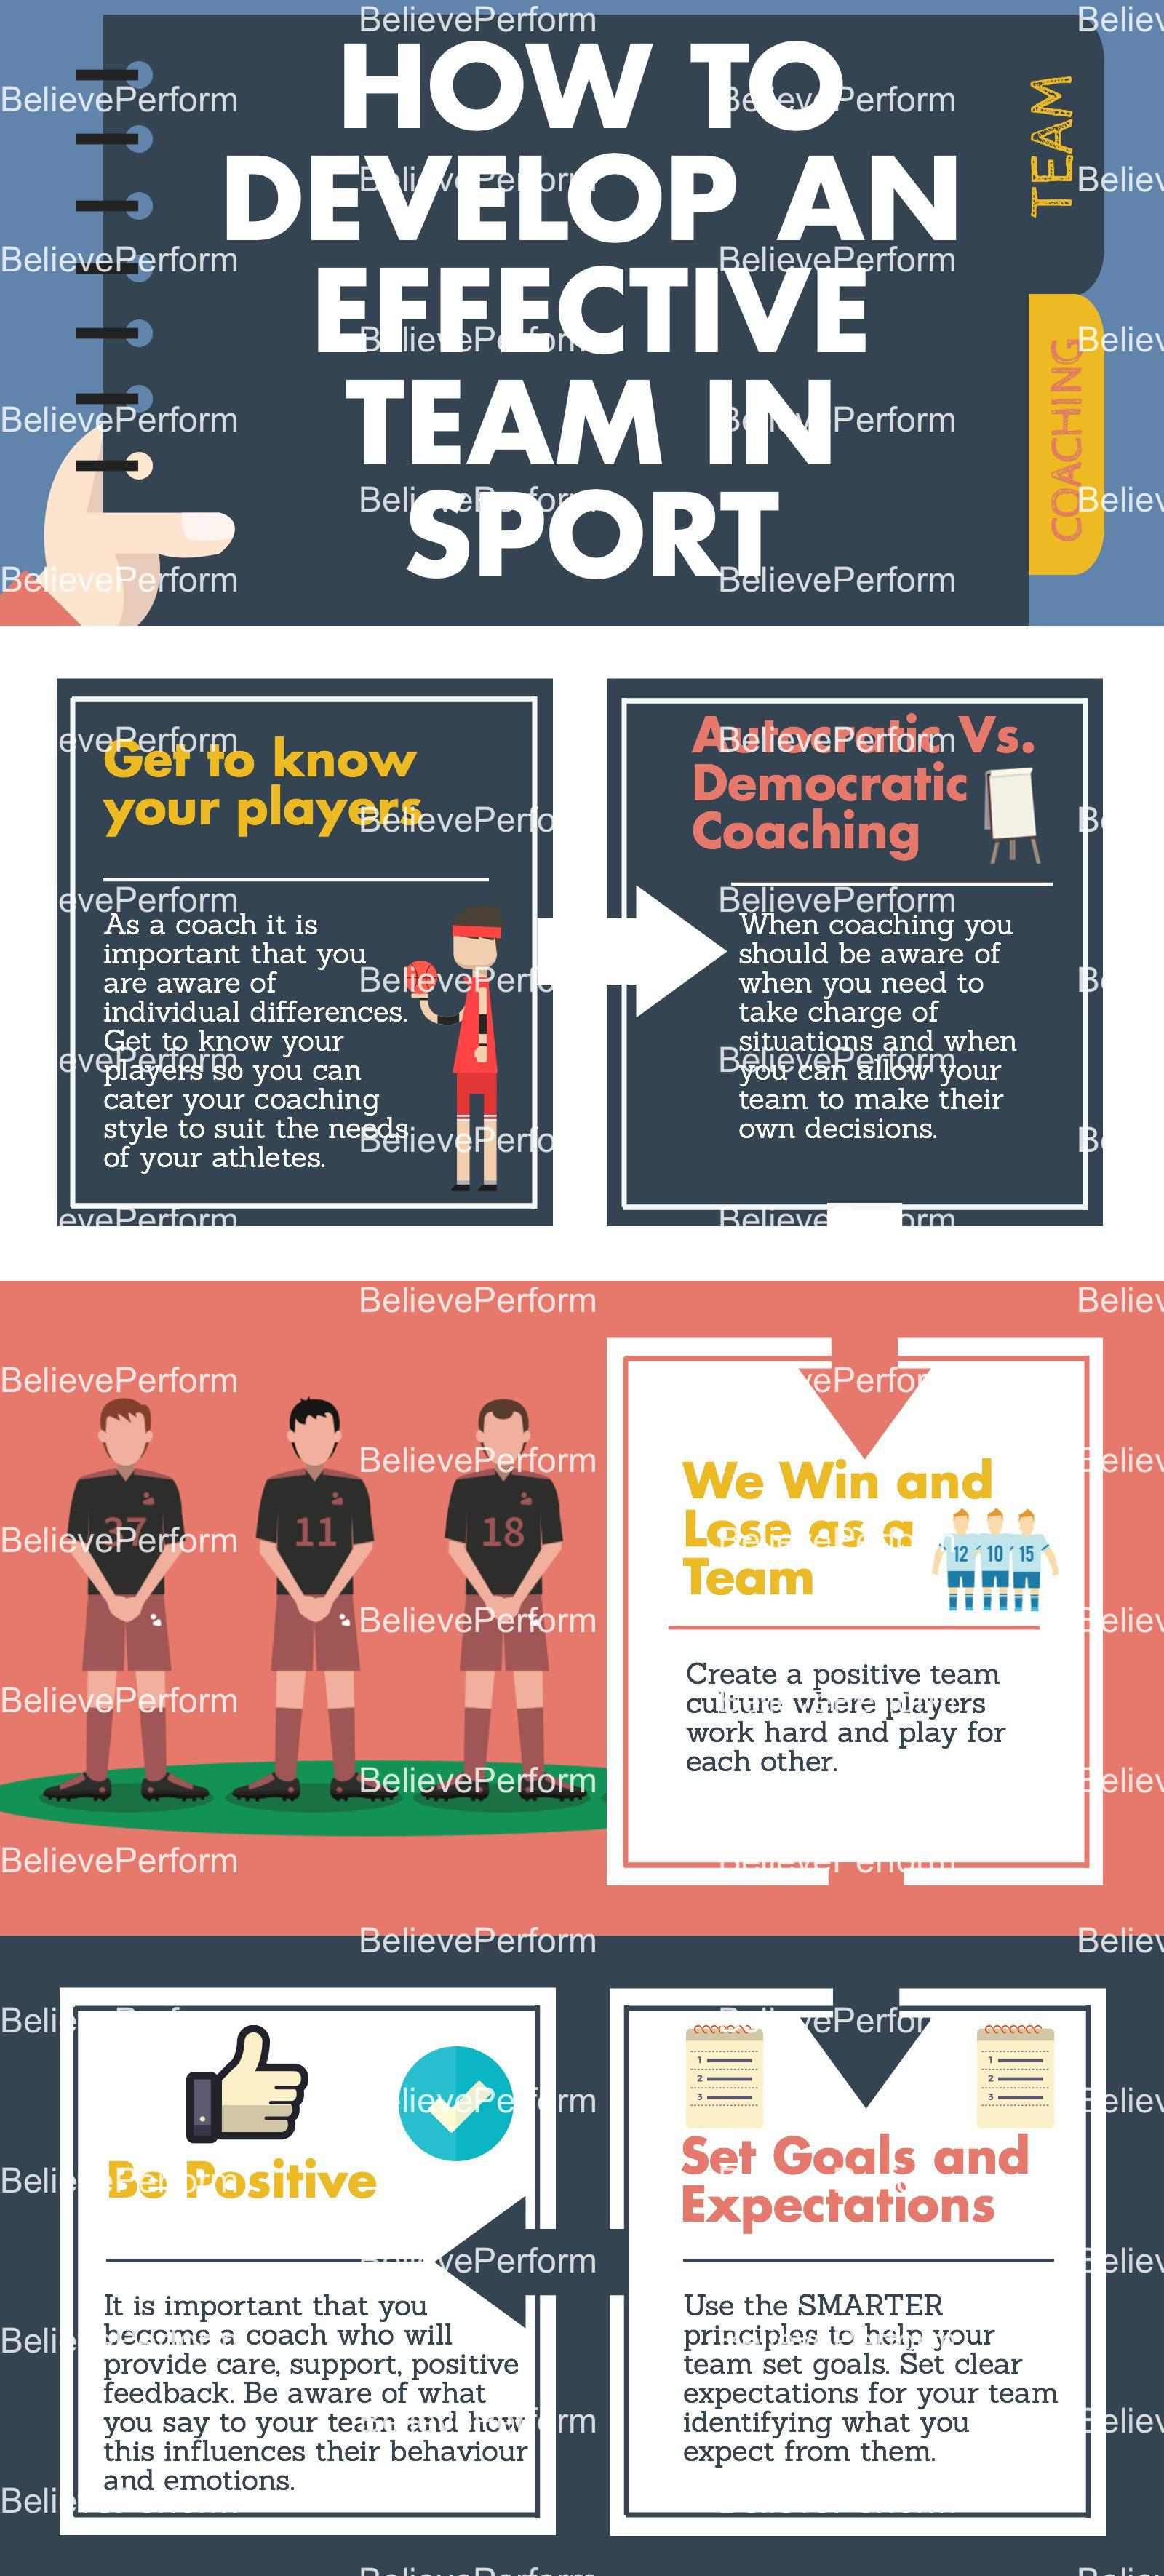 How to develop an effective team in sport